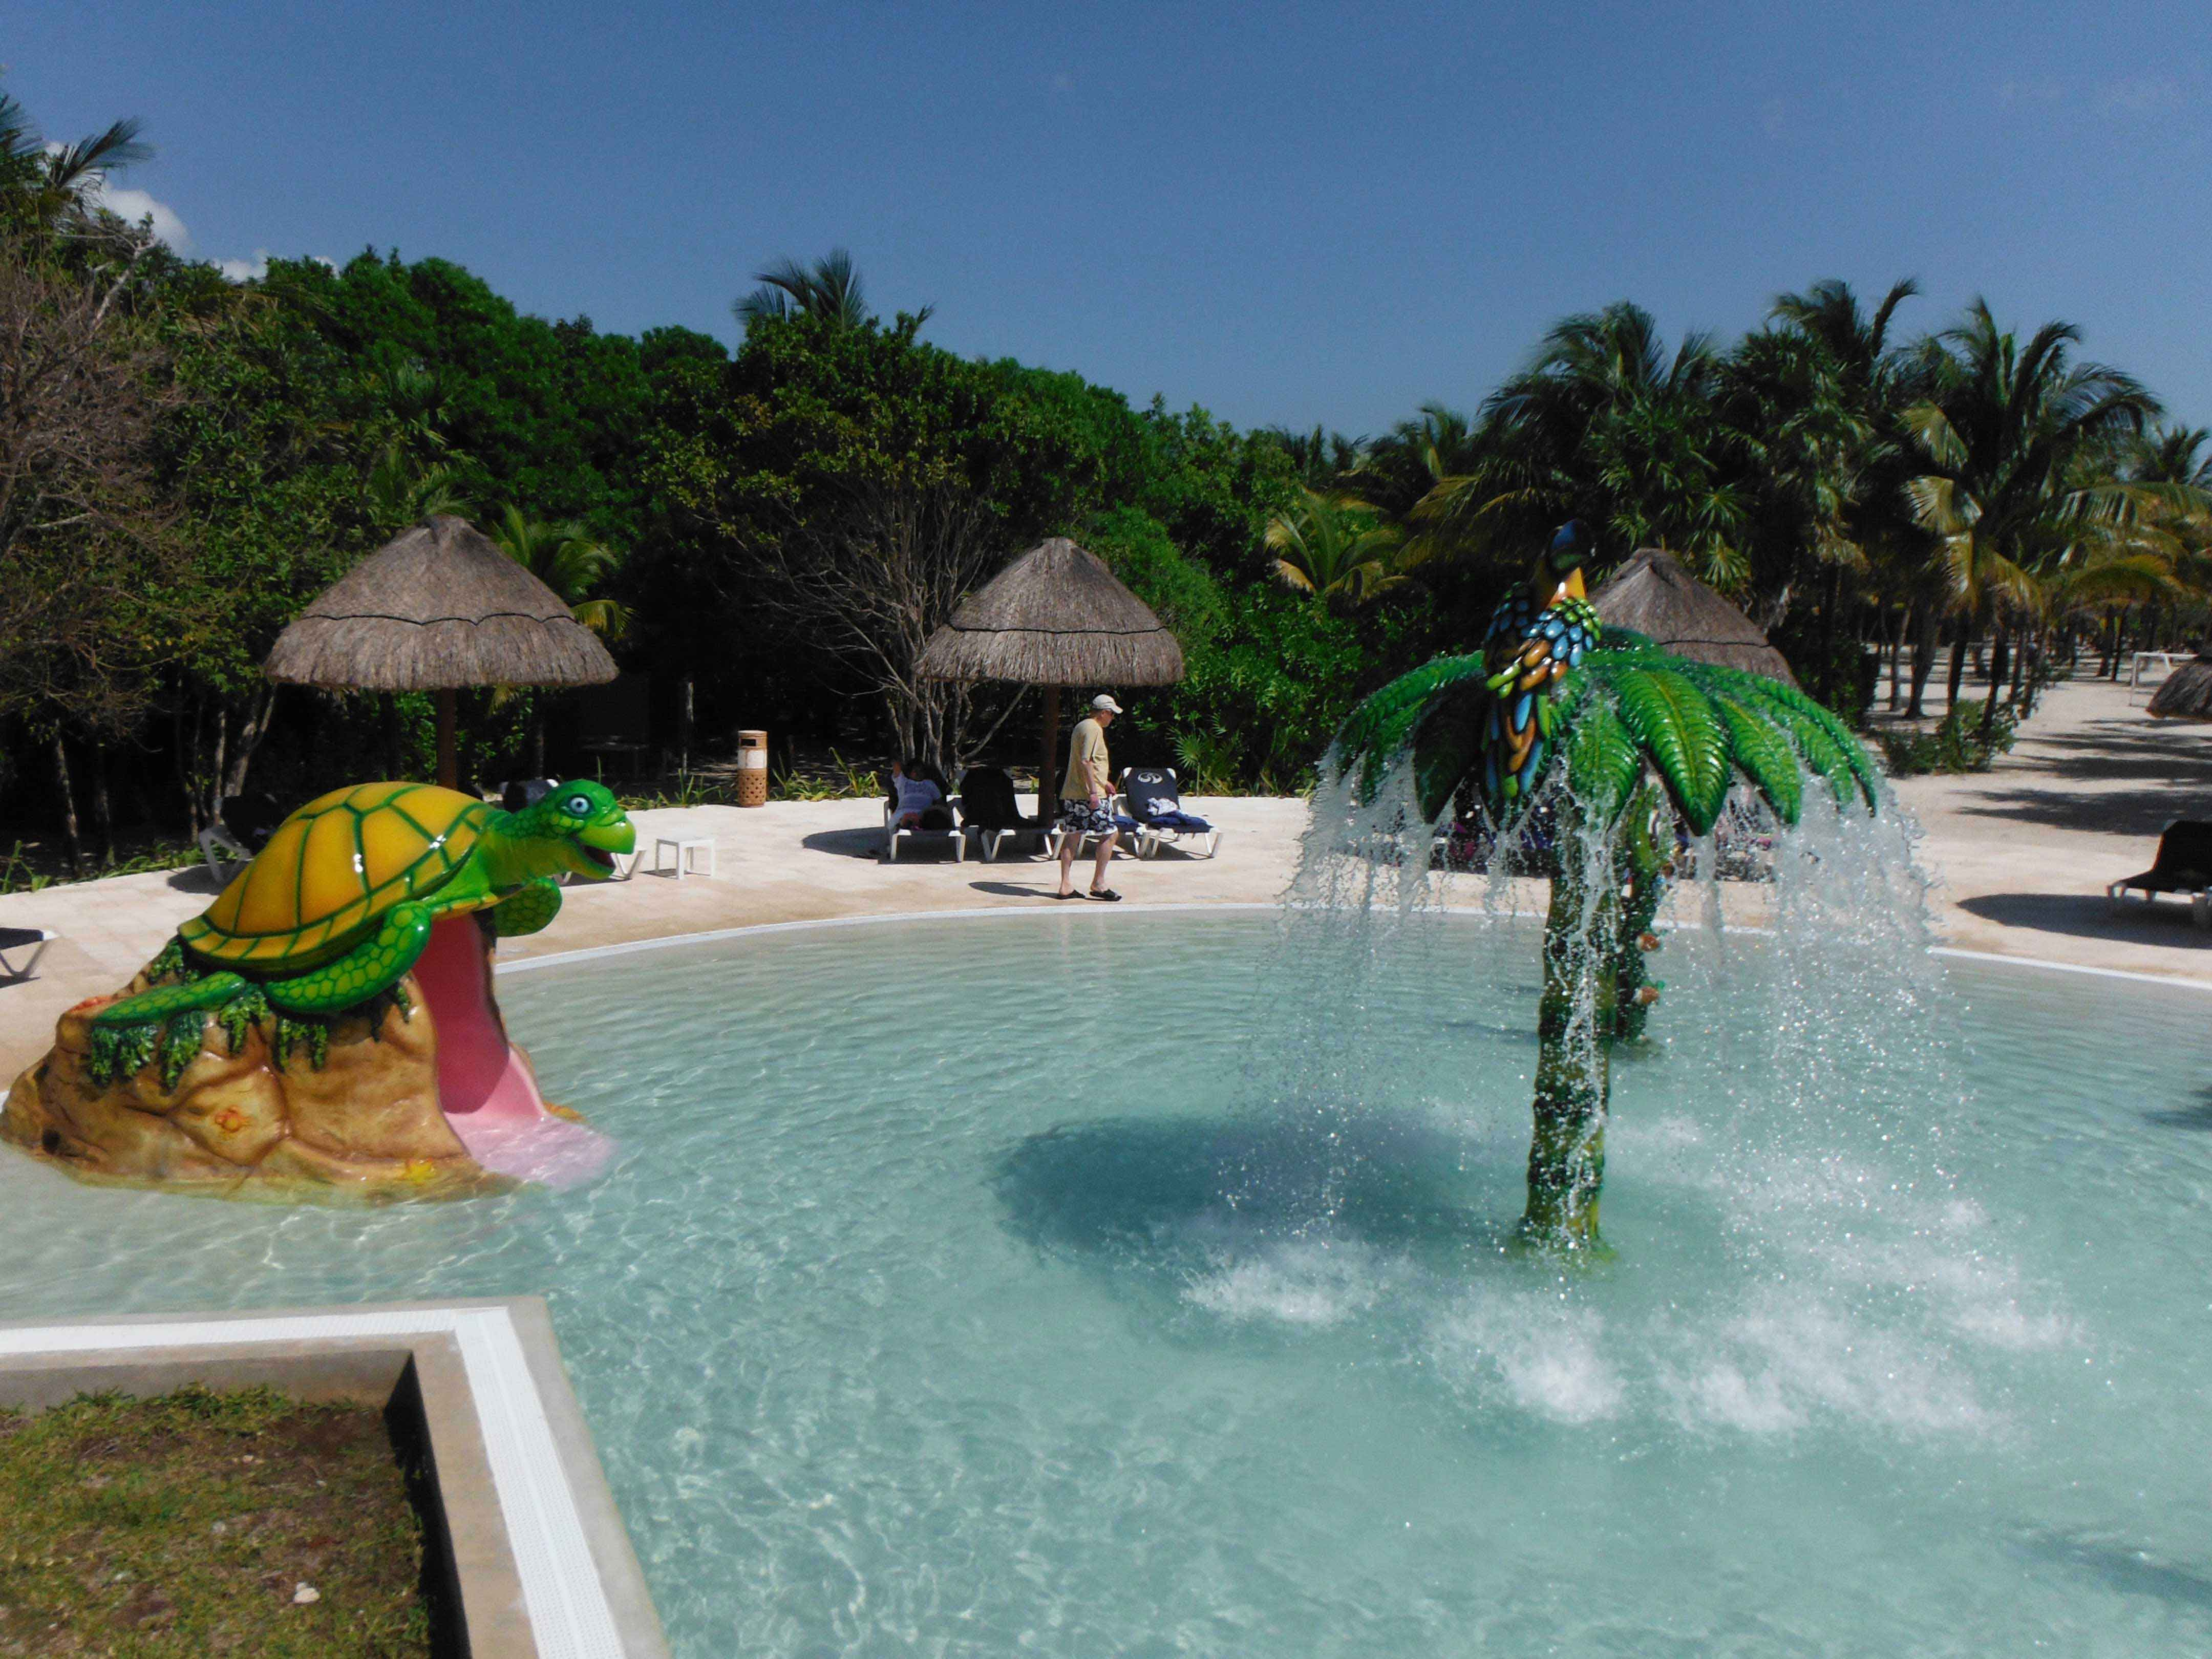 Baby Can Travel - A guide to an All-Inclusive with a Baby - Kiddie Pool